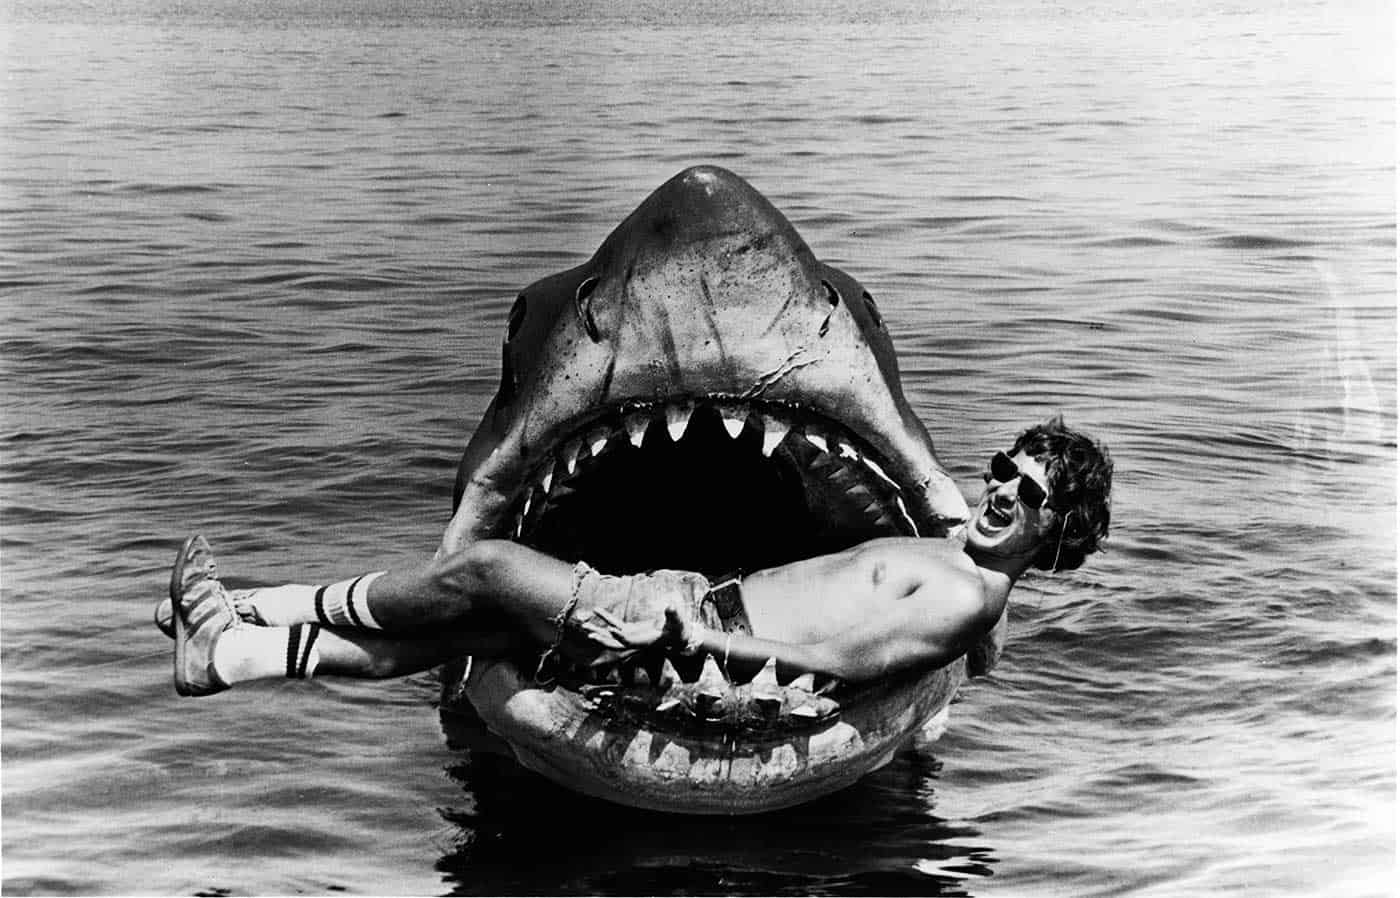 Jaws – thriller movie